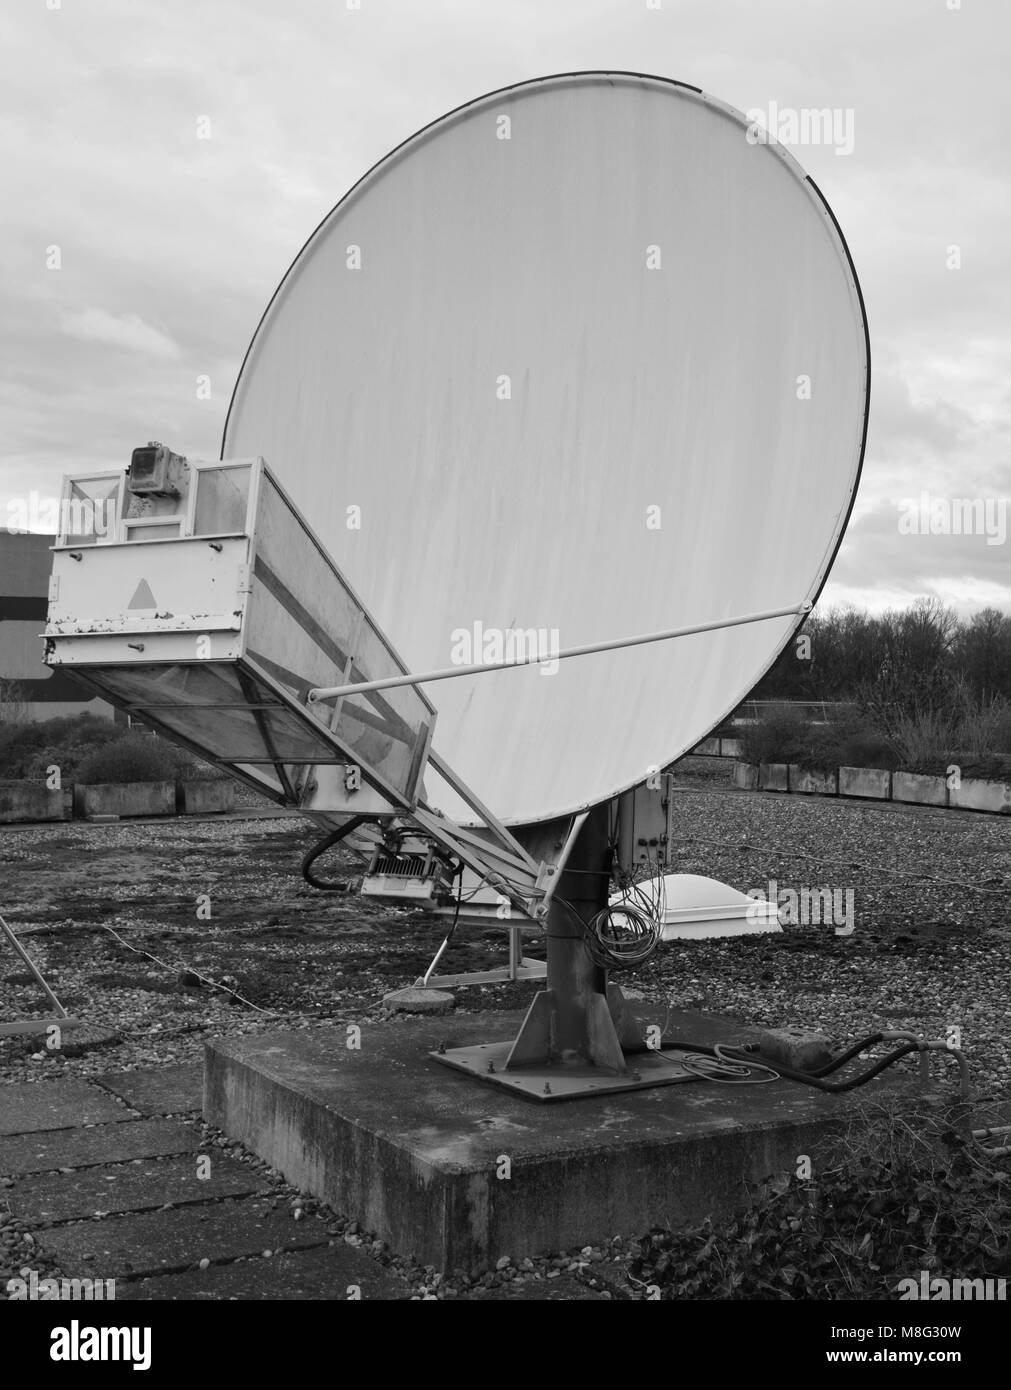 nostalgic look of a satellite dish in black and white - Stock Image